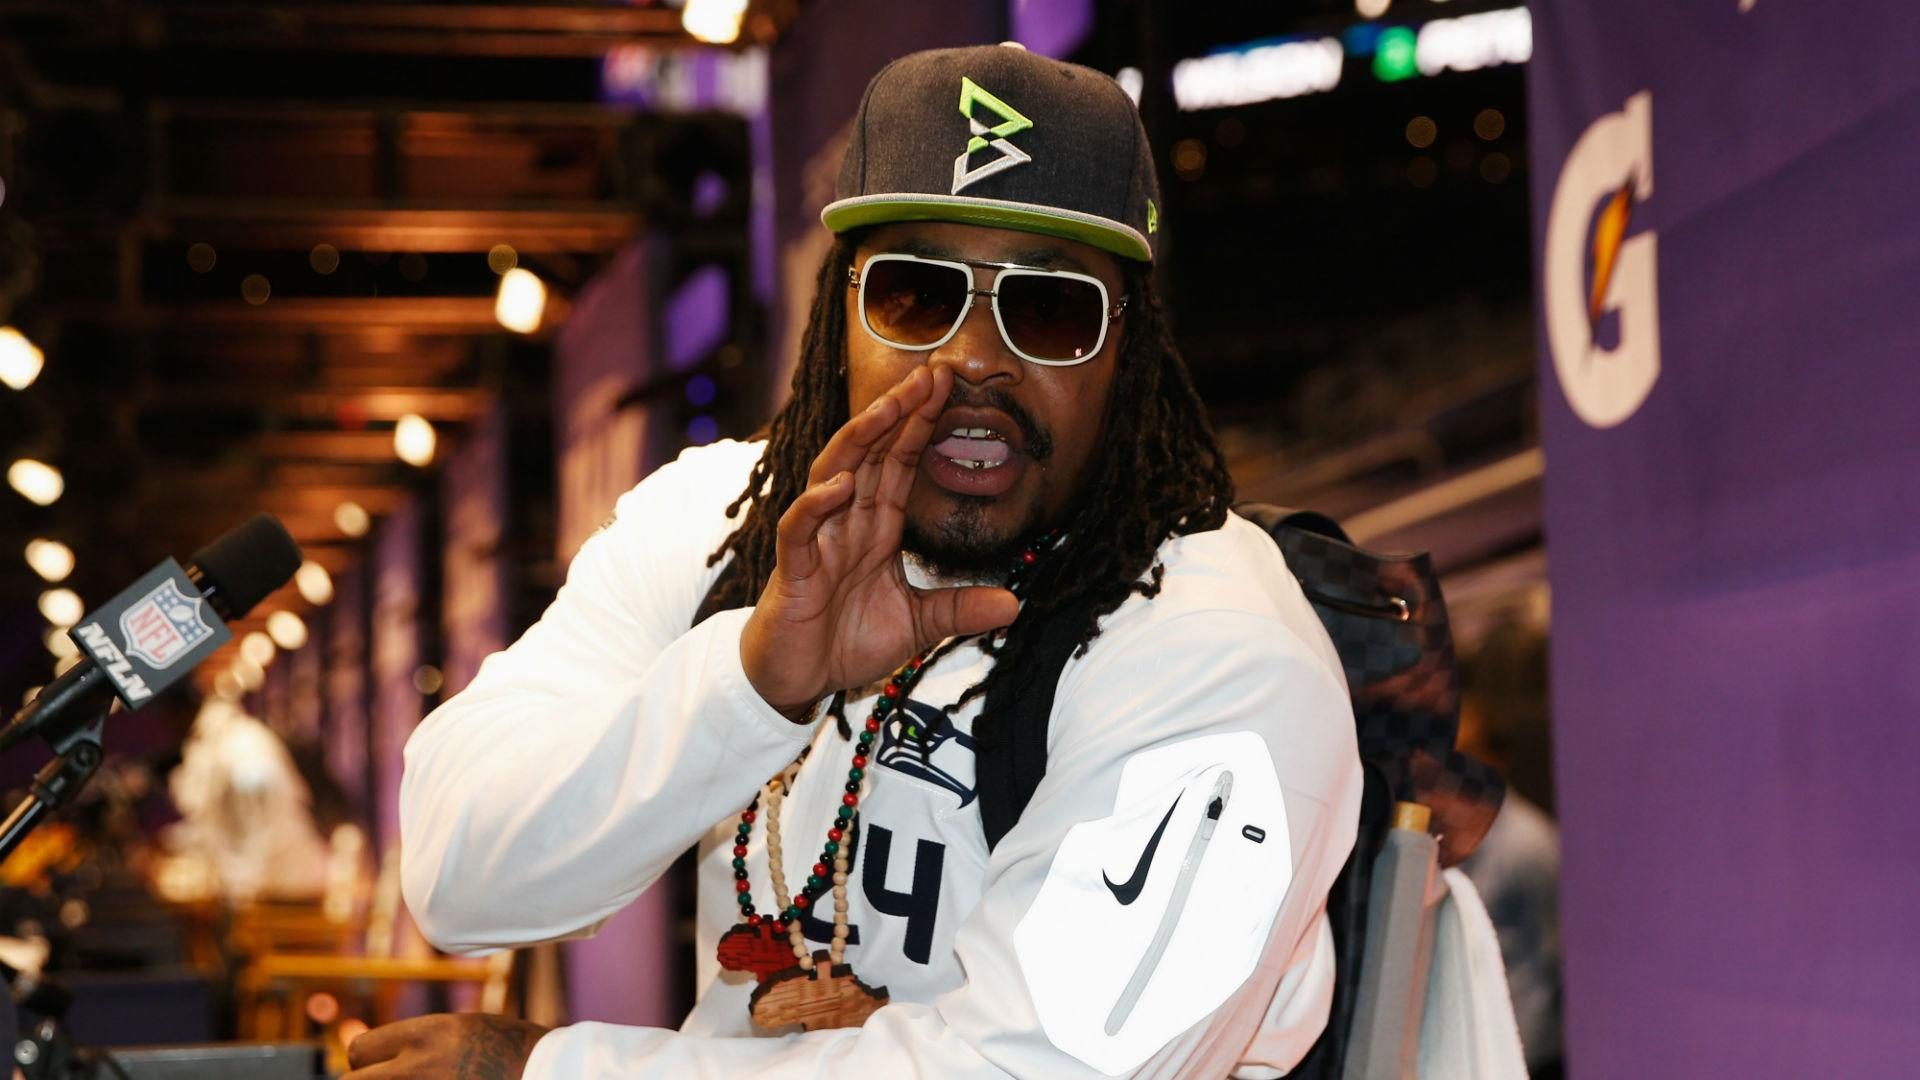 Marshawn Lynch has talked to ex-teammates about NFL return in 2016, report says